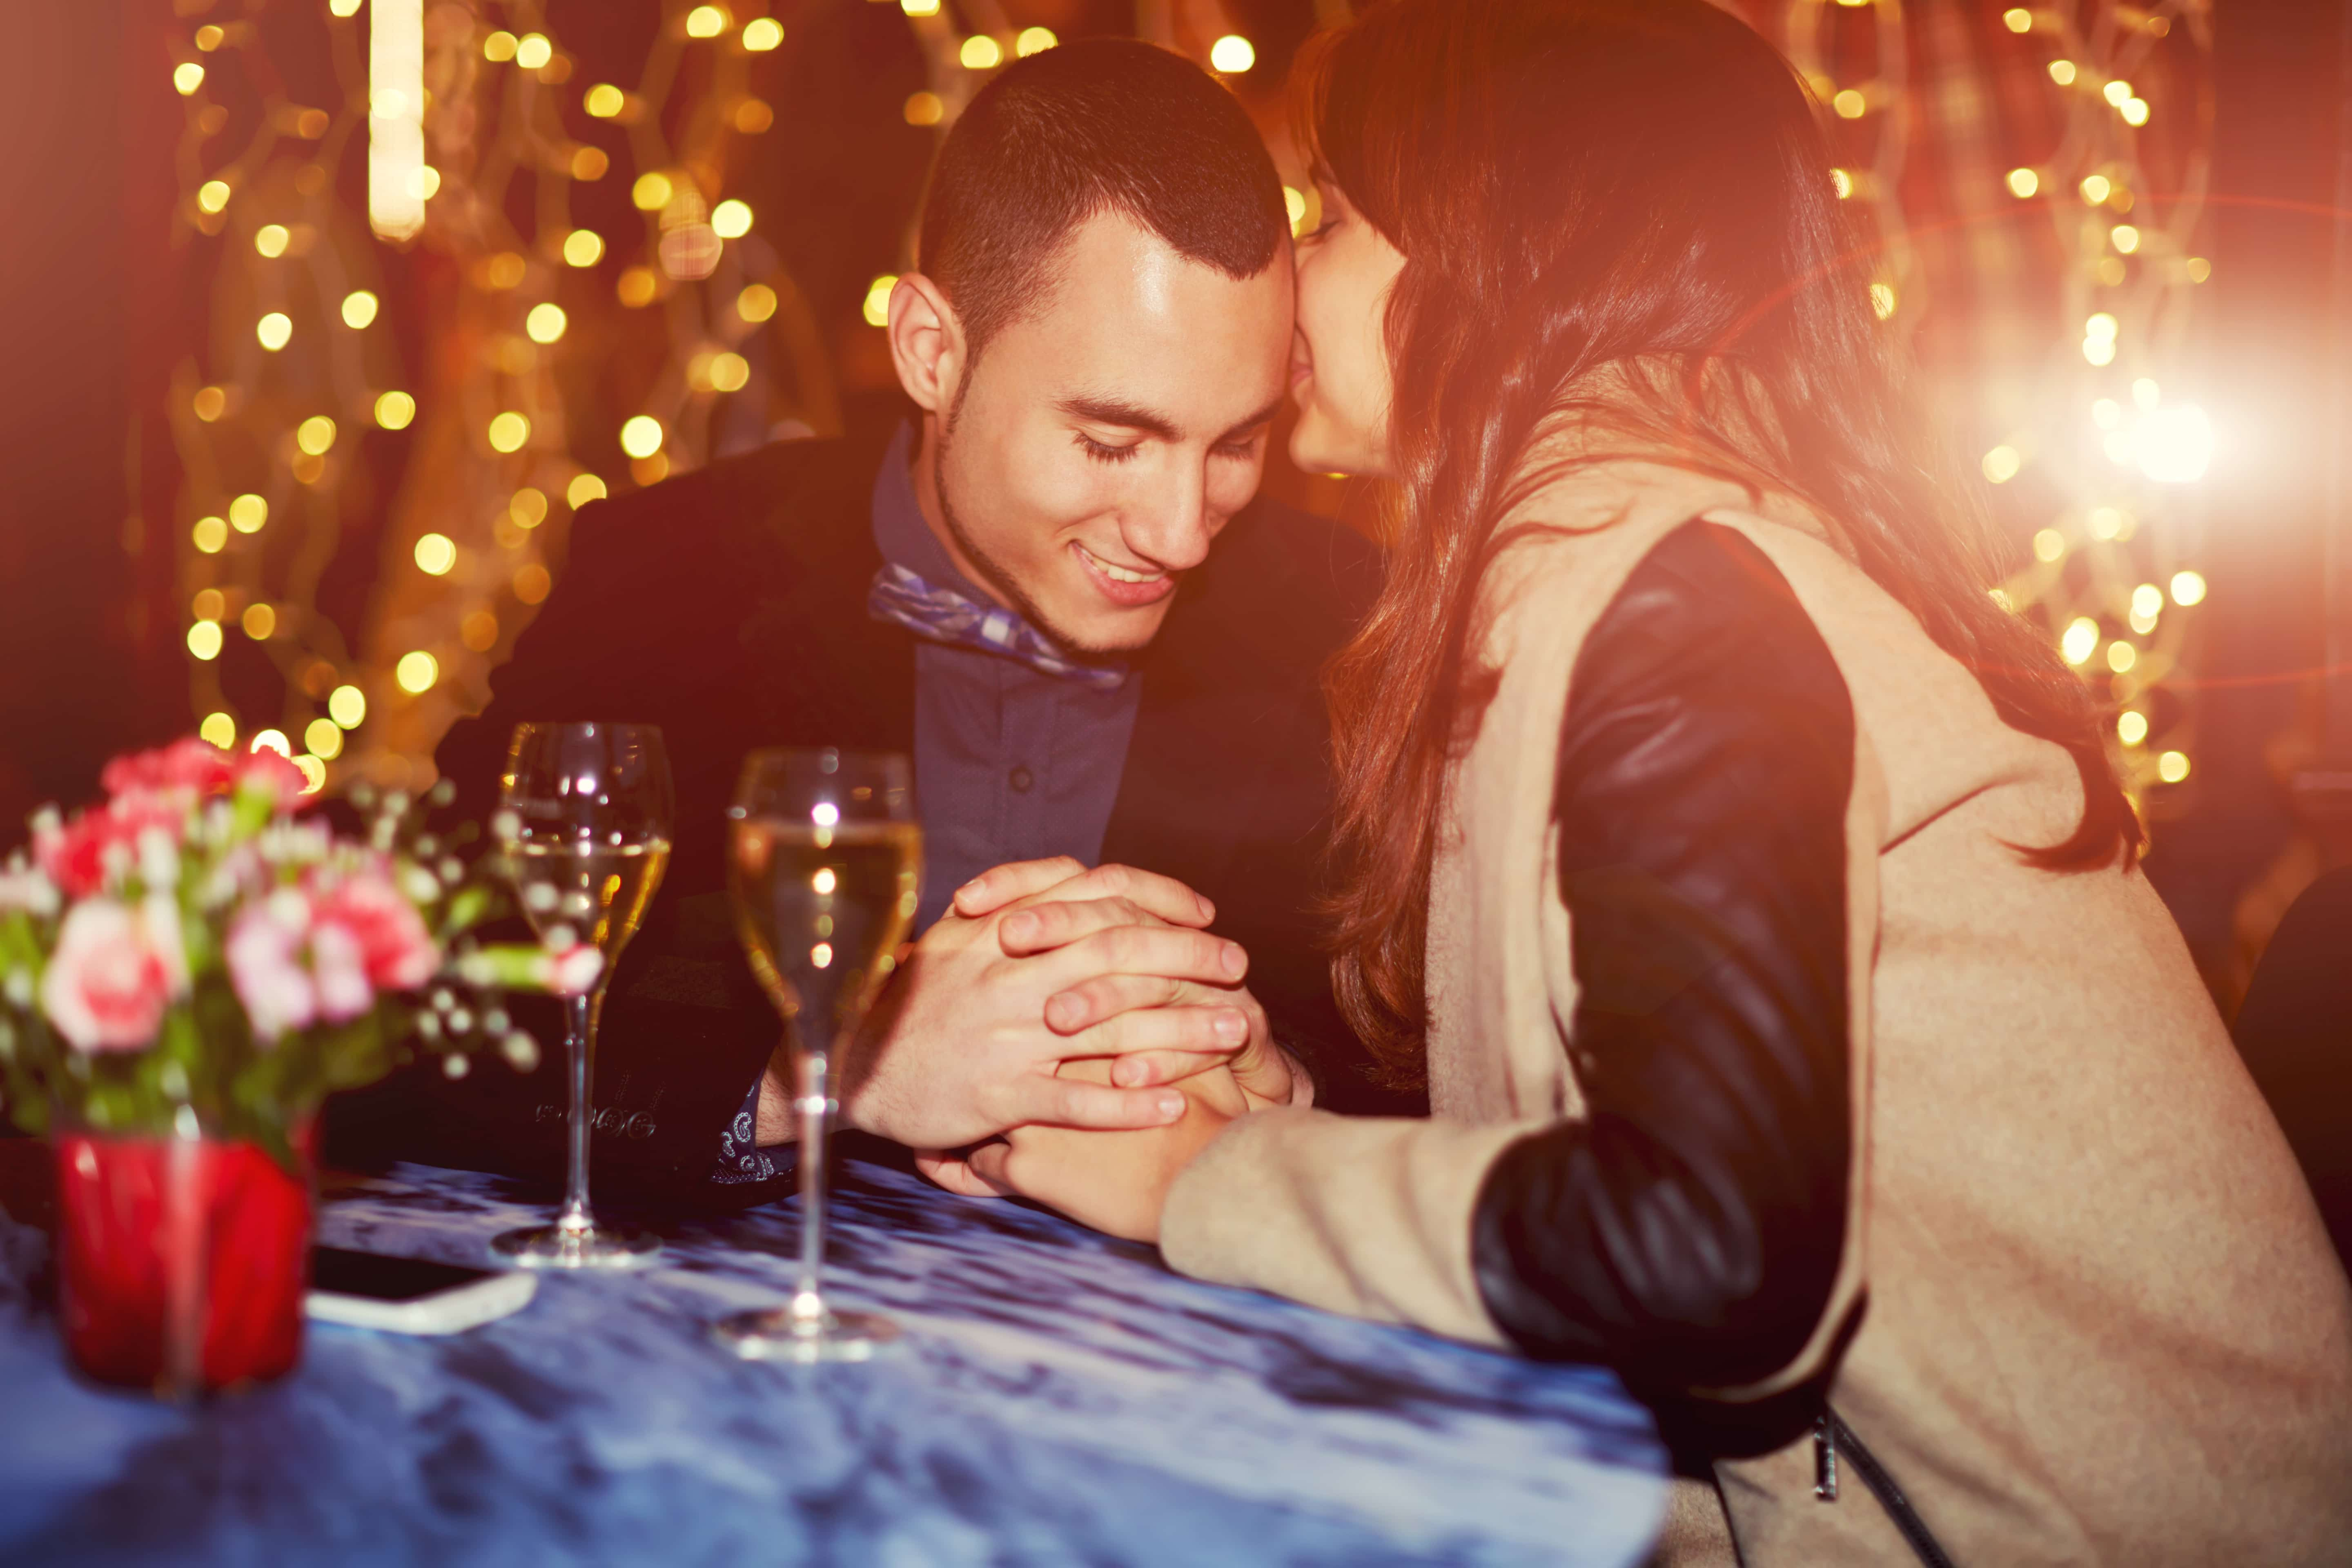 3 Things That Can Drive Your Ex Girlfriend to Rebound Relationship